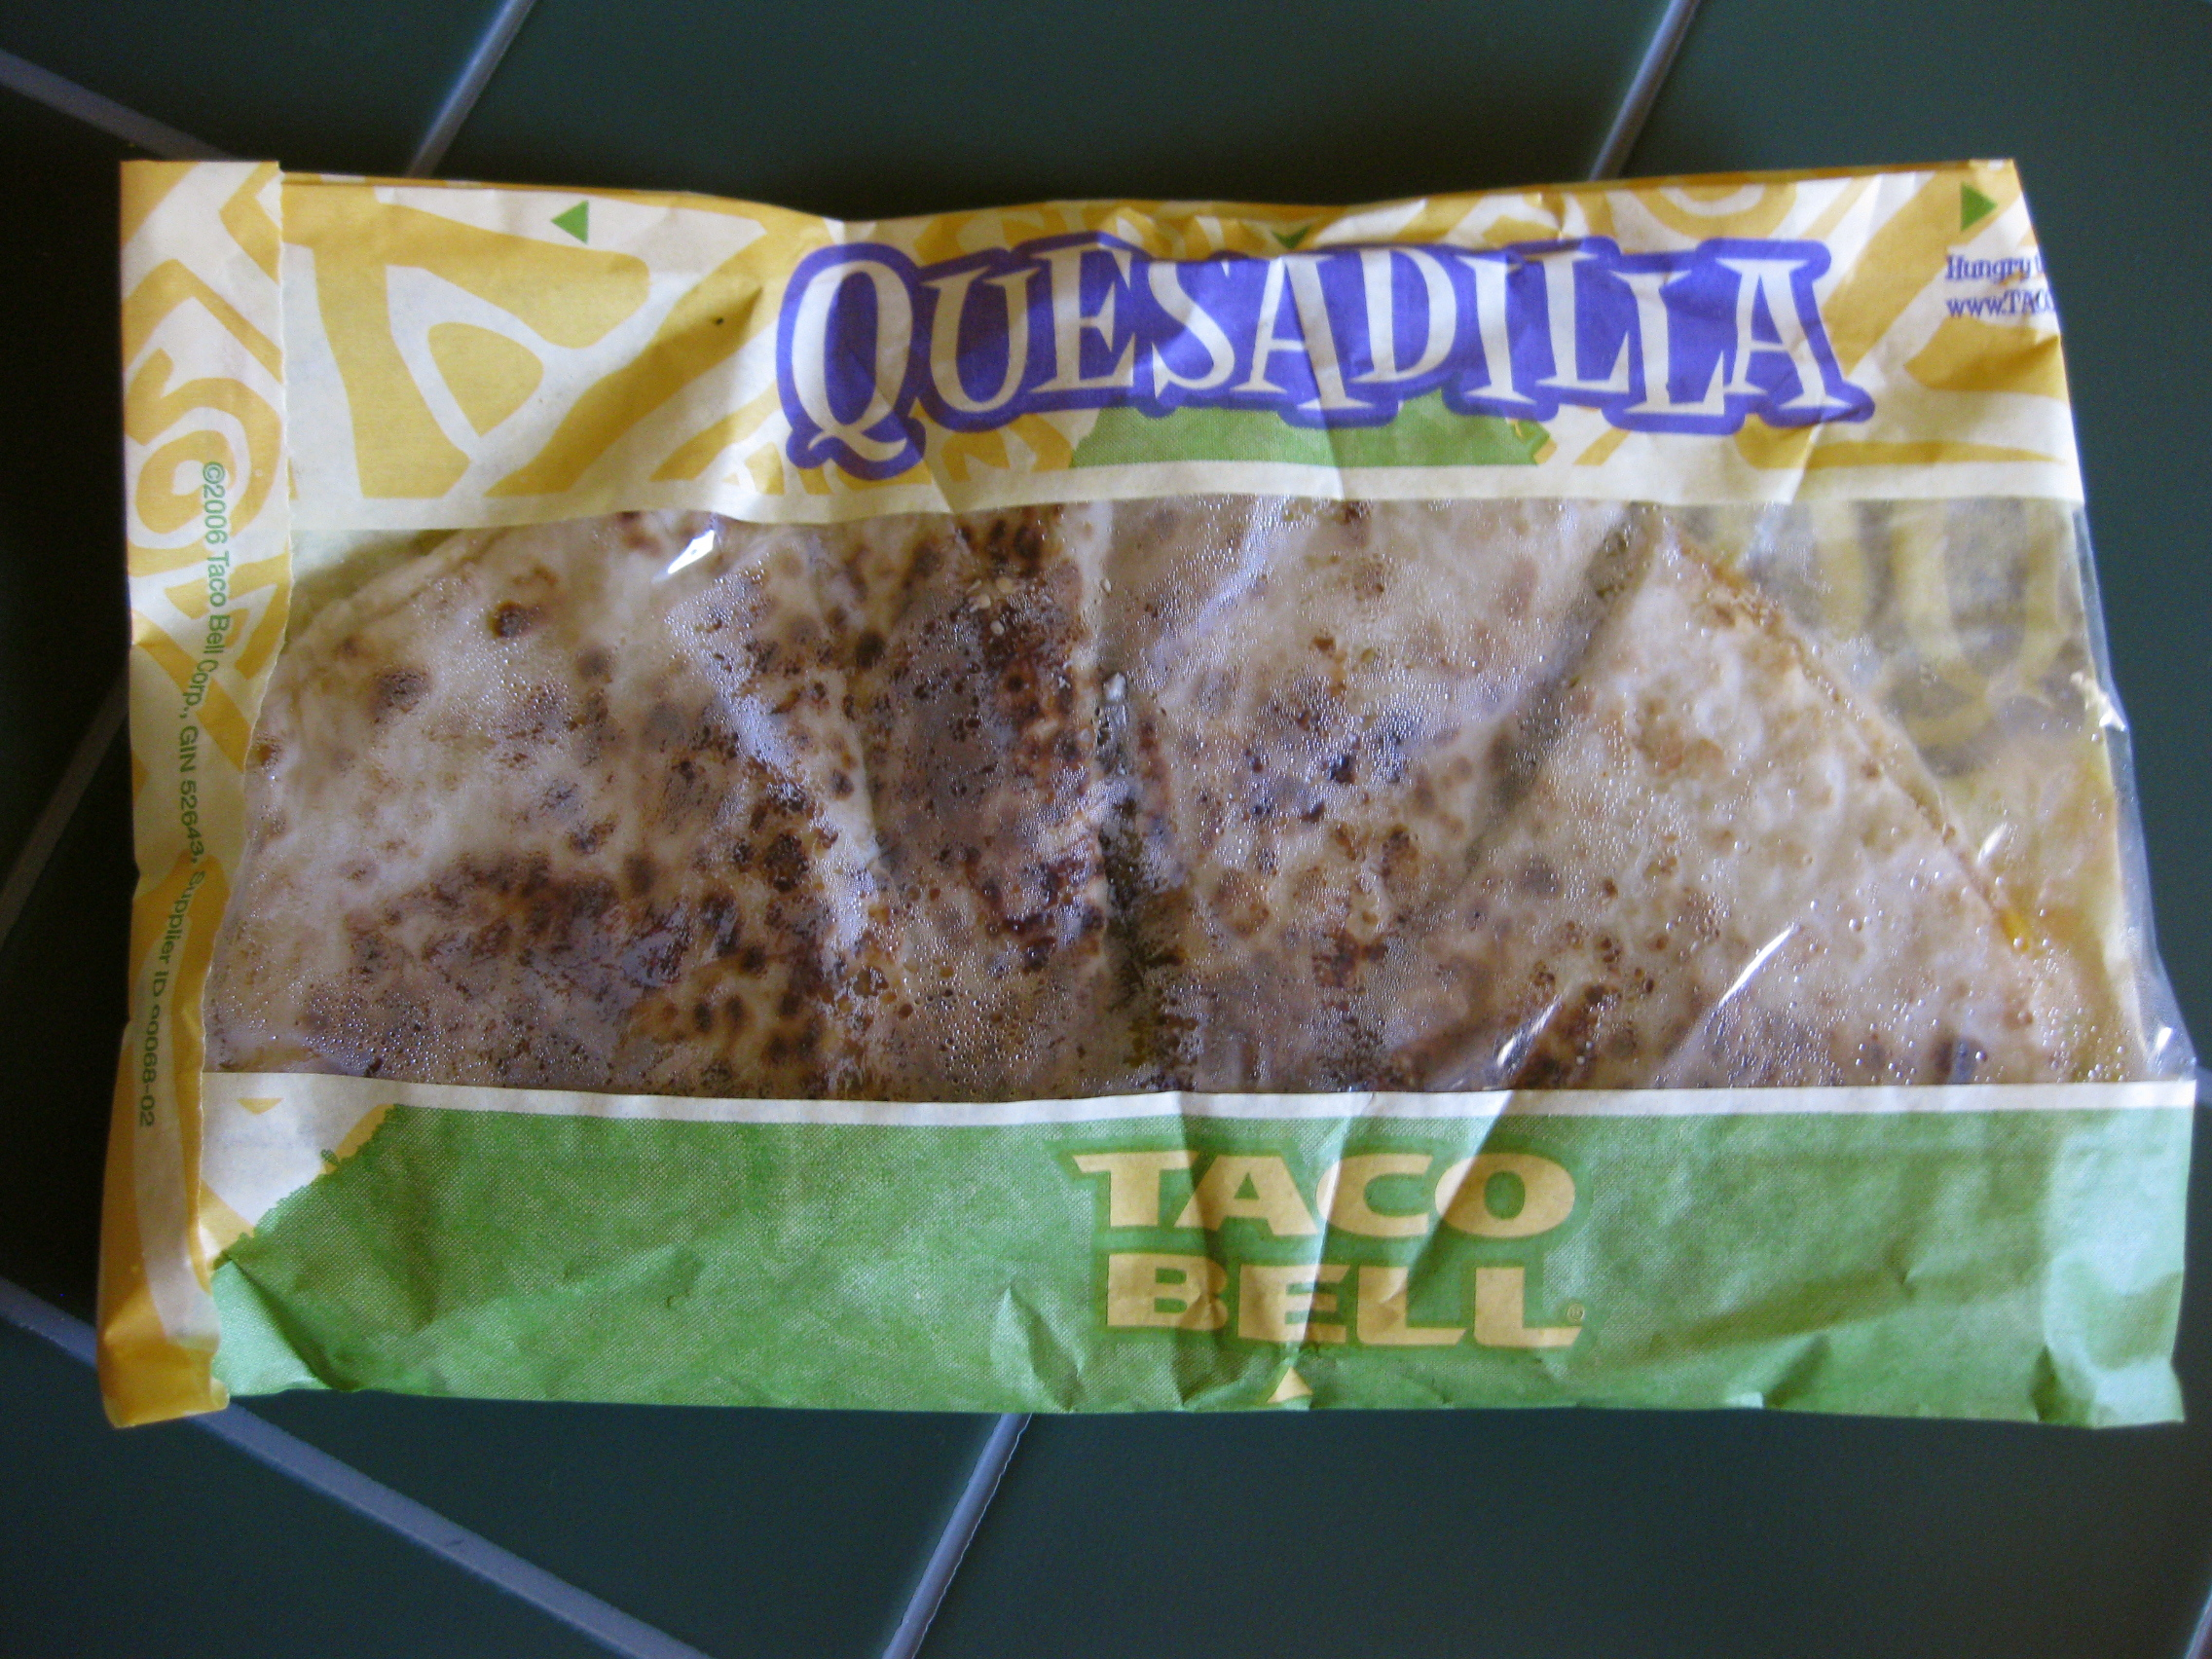 Grande Quesadilla from Taco Bell (wrapper)